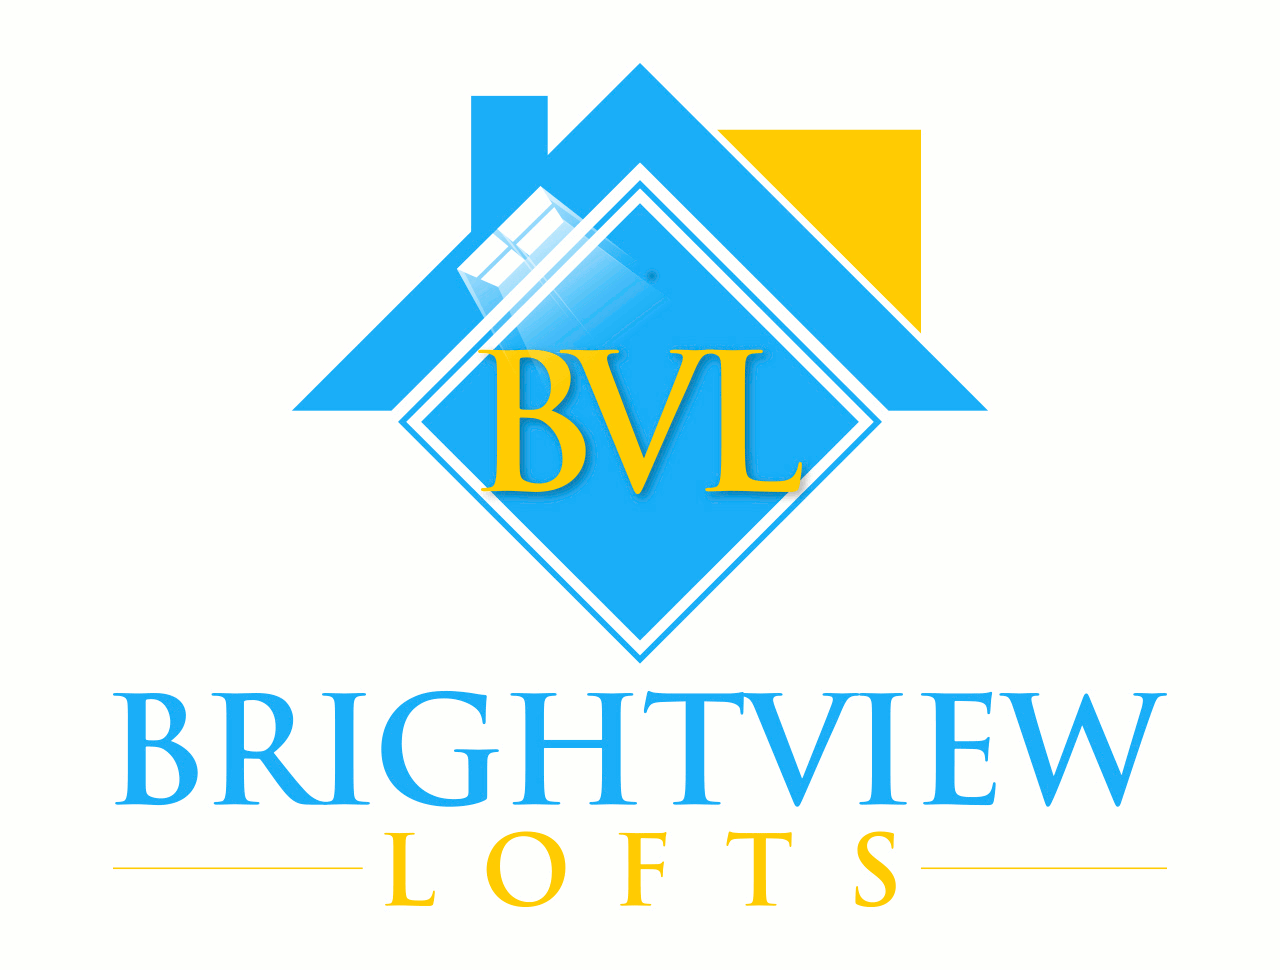 Brightview Lofts Ltd